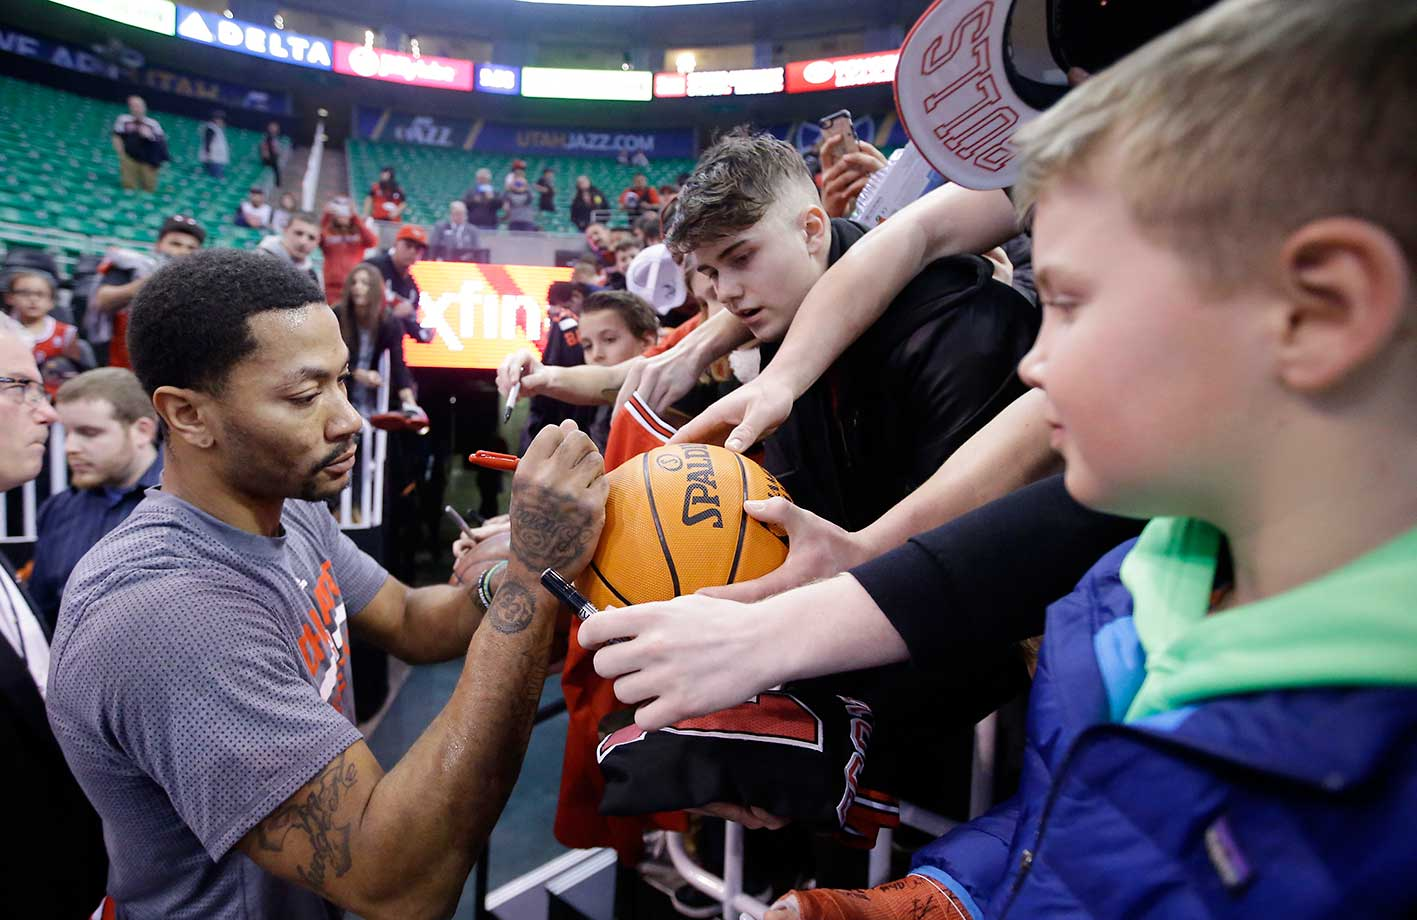 Chicago Bulls guard Derrick Rose signs autographs during practice before the start of a game against the Utah Jazz in Salt Lake City.